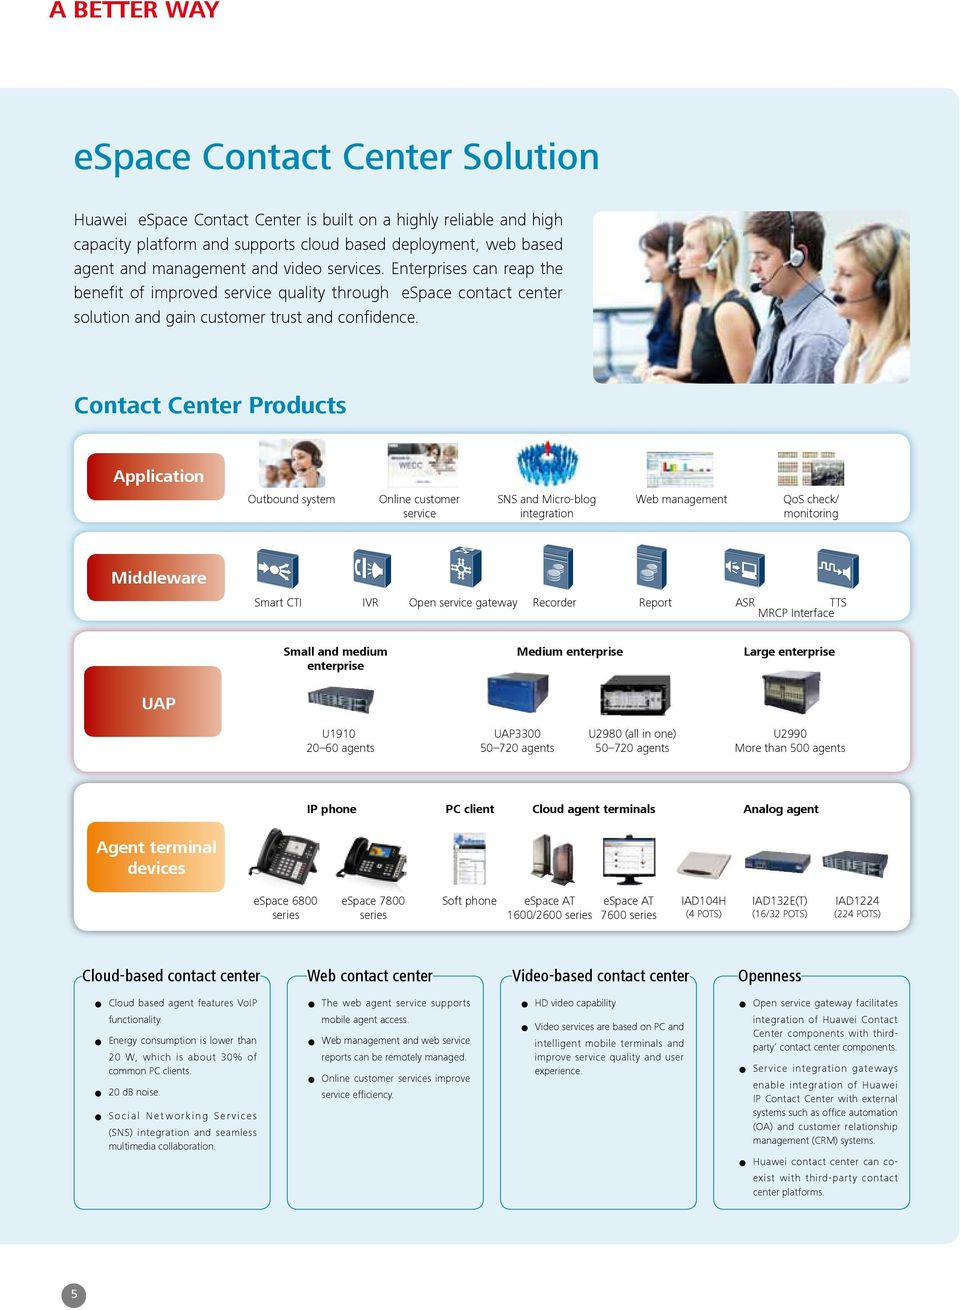 Contact Center Products Application Outbound system Online customer service SNS and Micro-blog integration Web management QoS check/ monitoring Middleware Smart CTI IVR Open service gateway Recorder